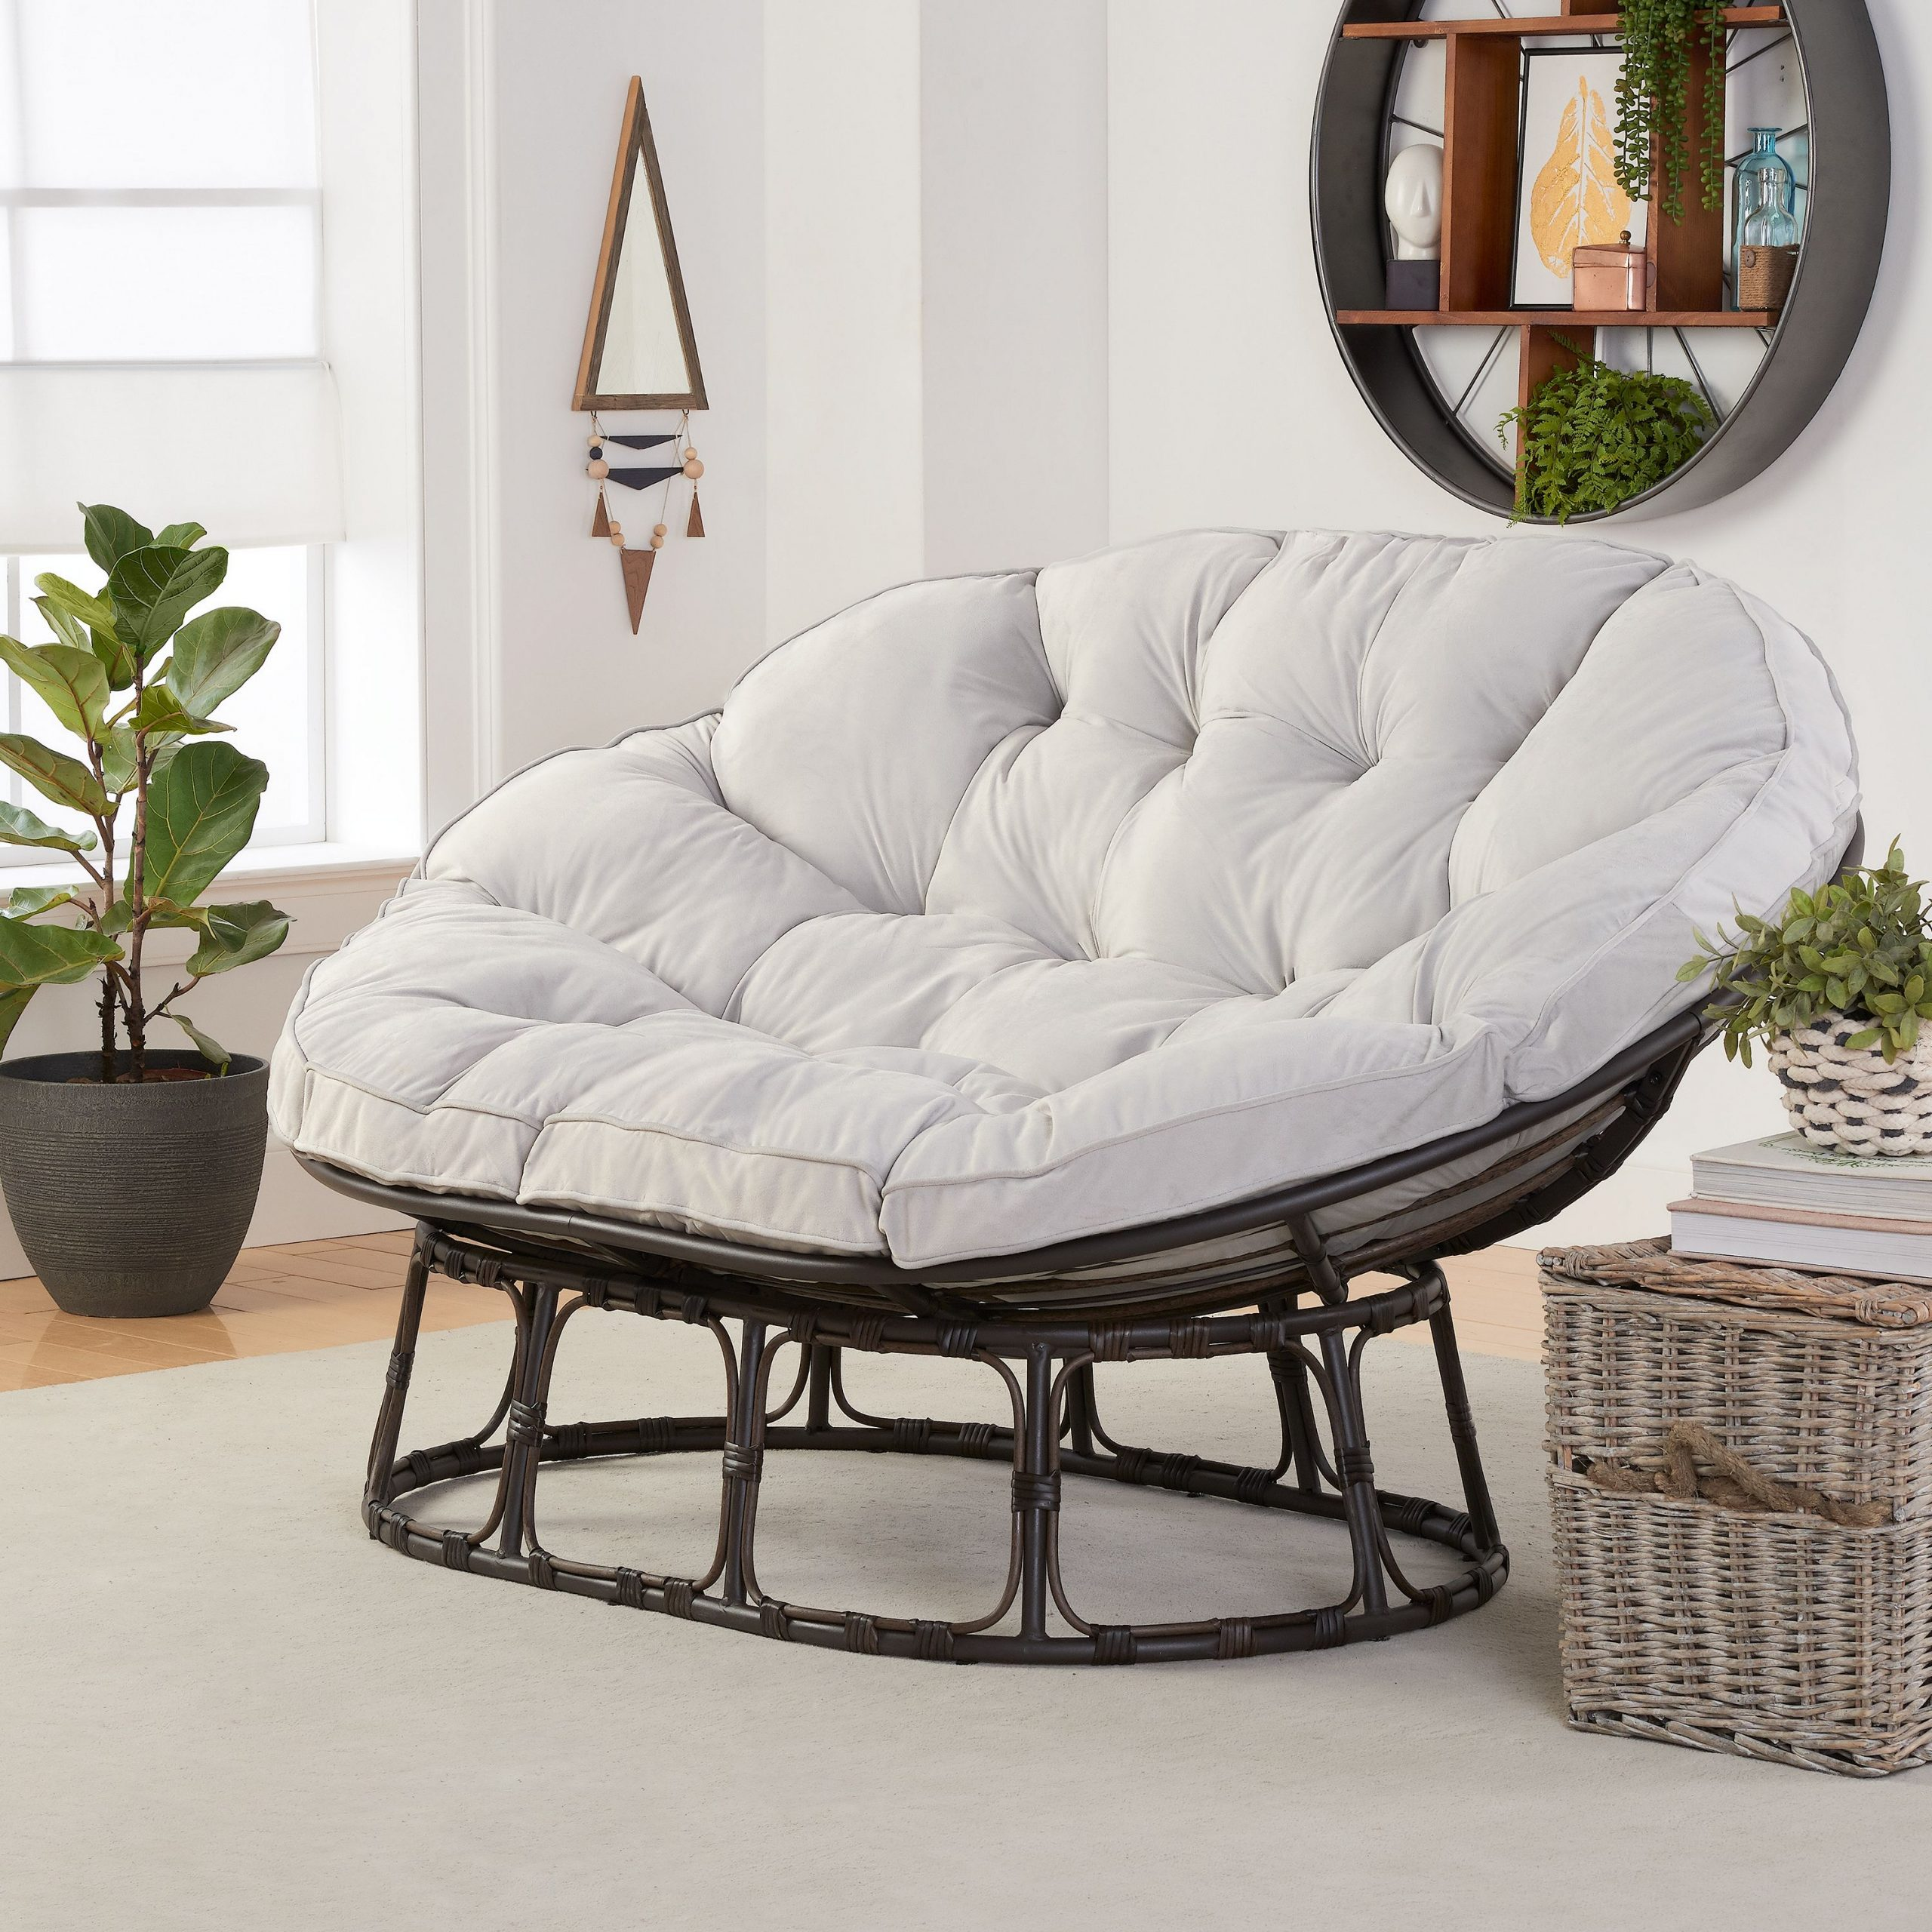 Better Homes & Gardens Papasan Bench With Cushion, Pumice Gray – Walmart Regarding Decker Papasan Chairs (View 9 of 15)